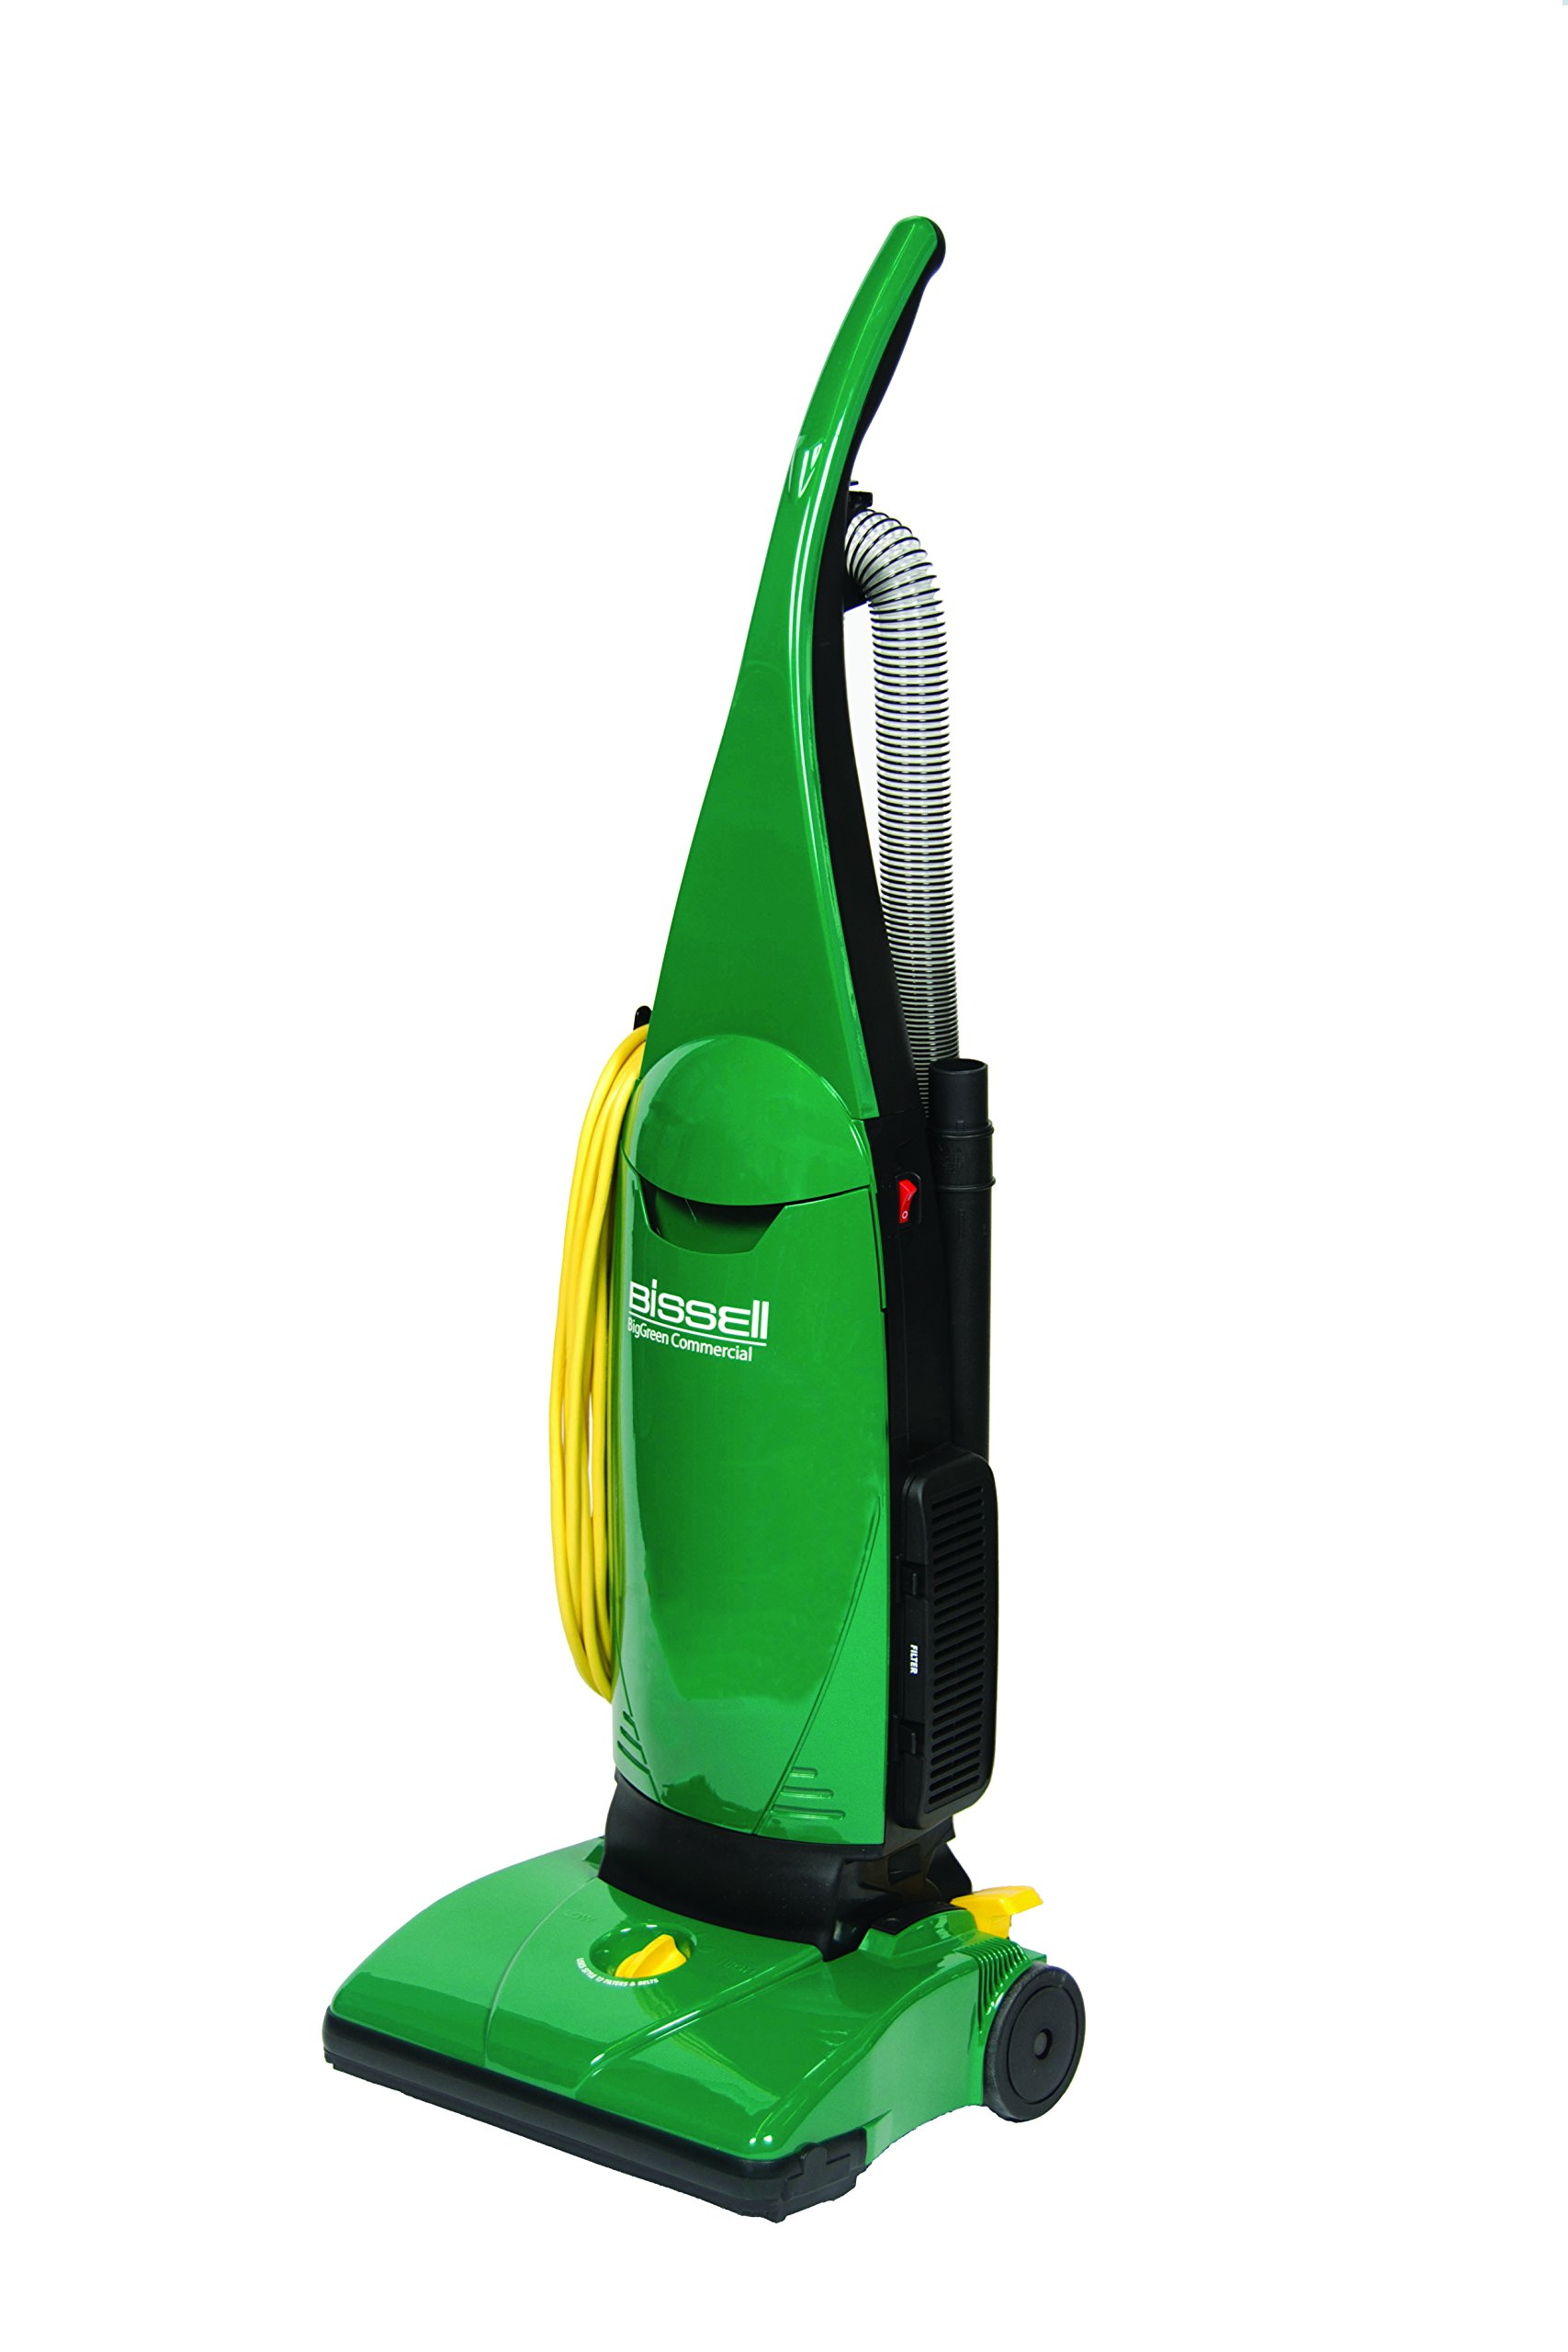 BISSELL BigGreen Commercial BGU1451T Pro PowerForce Bagged Upright Vacuum, Single Motor with Onboard Tools by Bissell